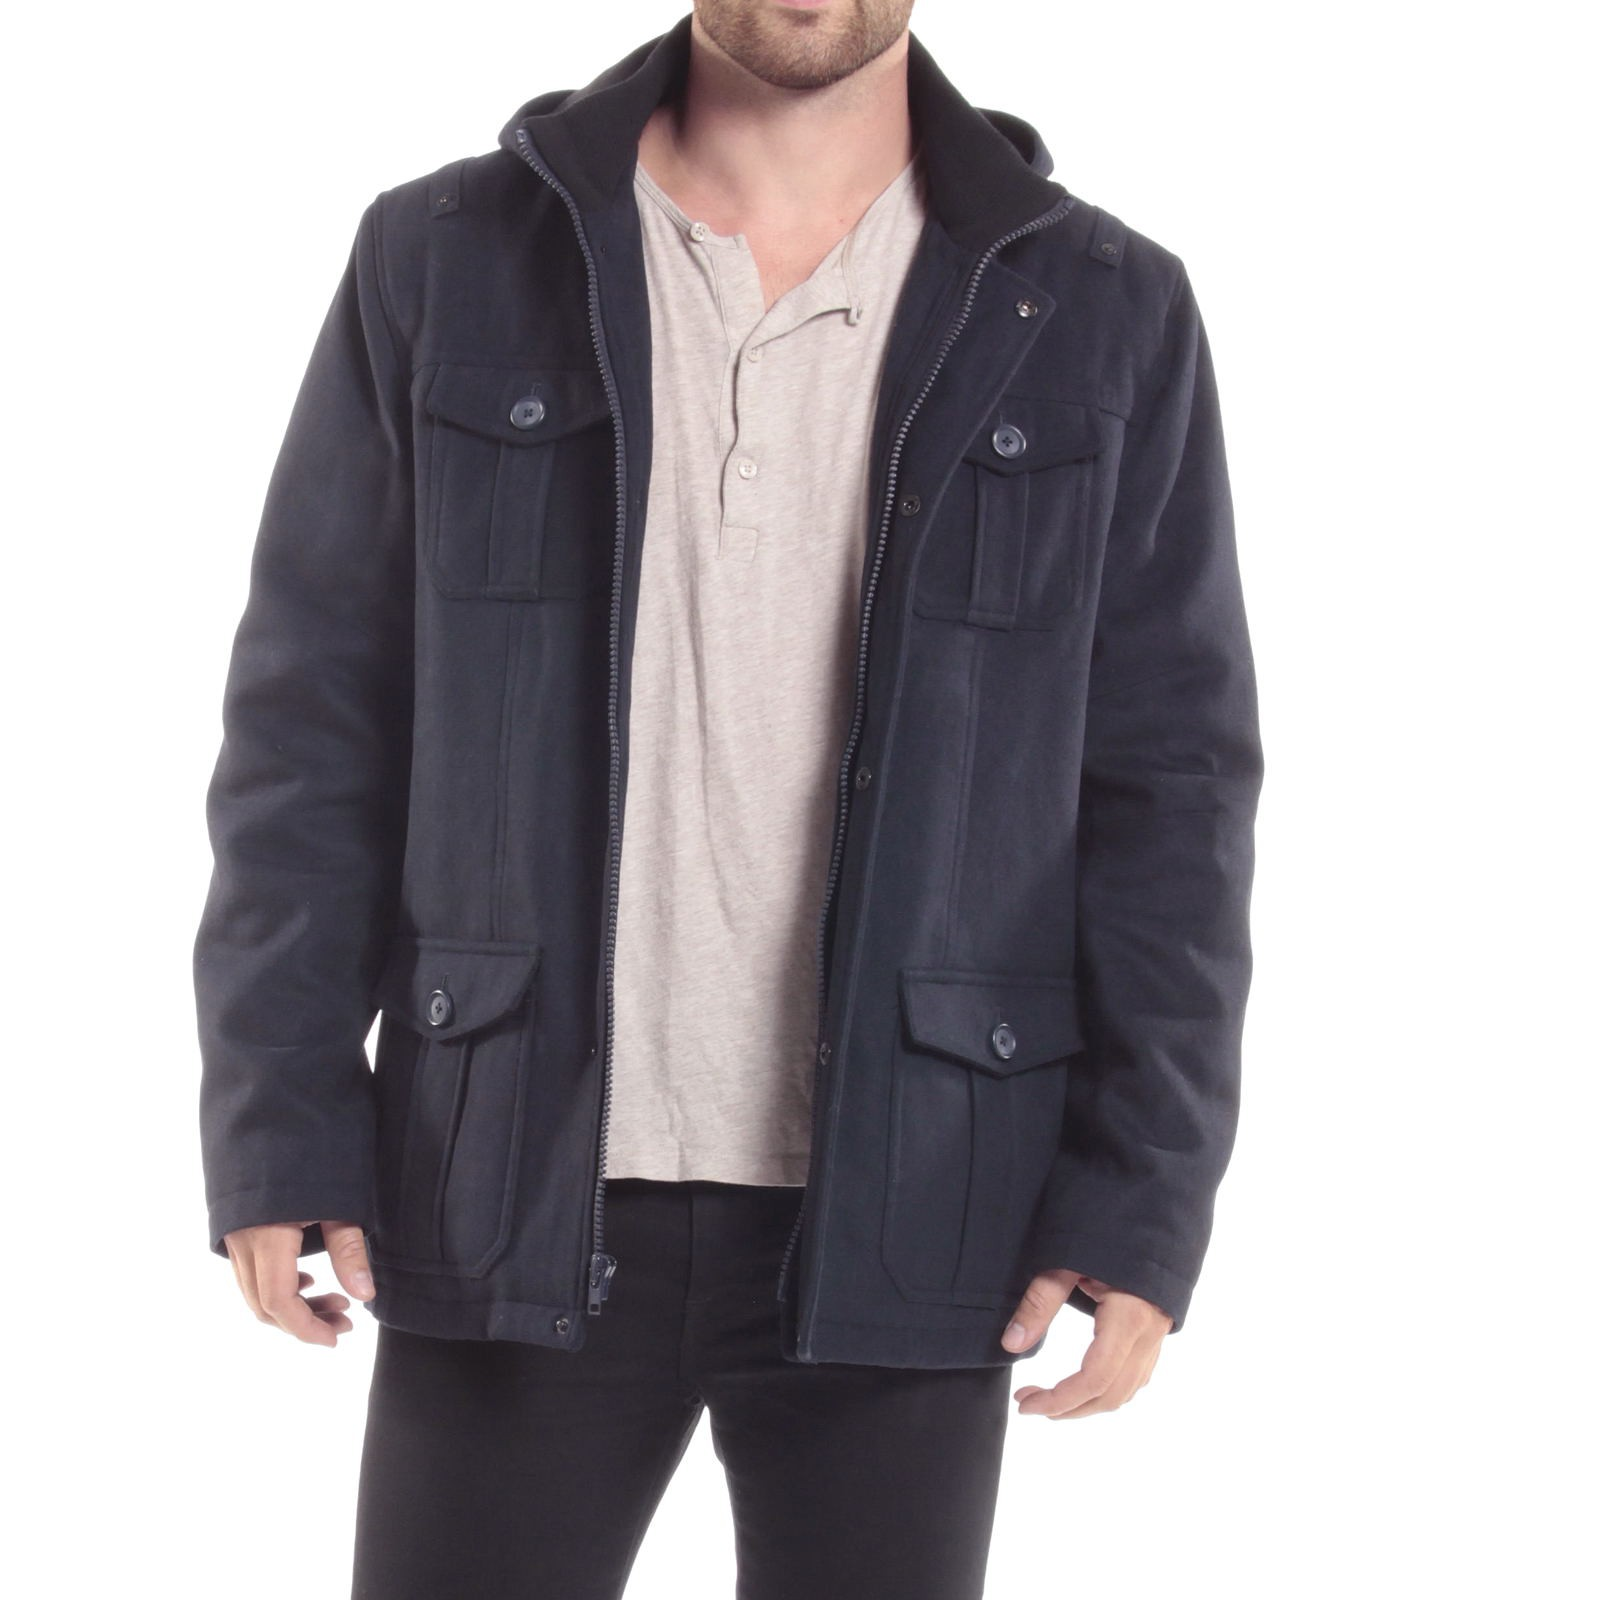 Alpine-Swiss-Noah-Mens-Wool-Coat-Parka-with-Removable-Hood-Jacket-Cargo-Pockets thumbnail 44